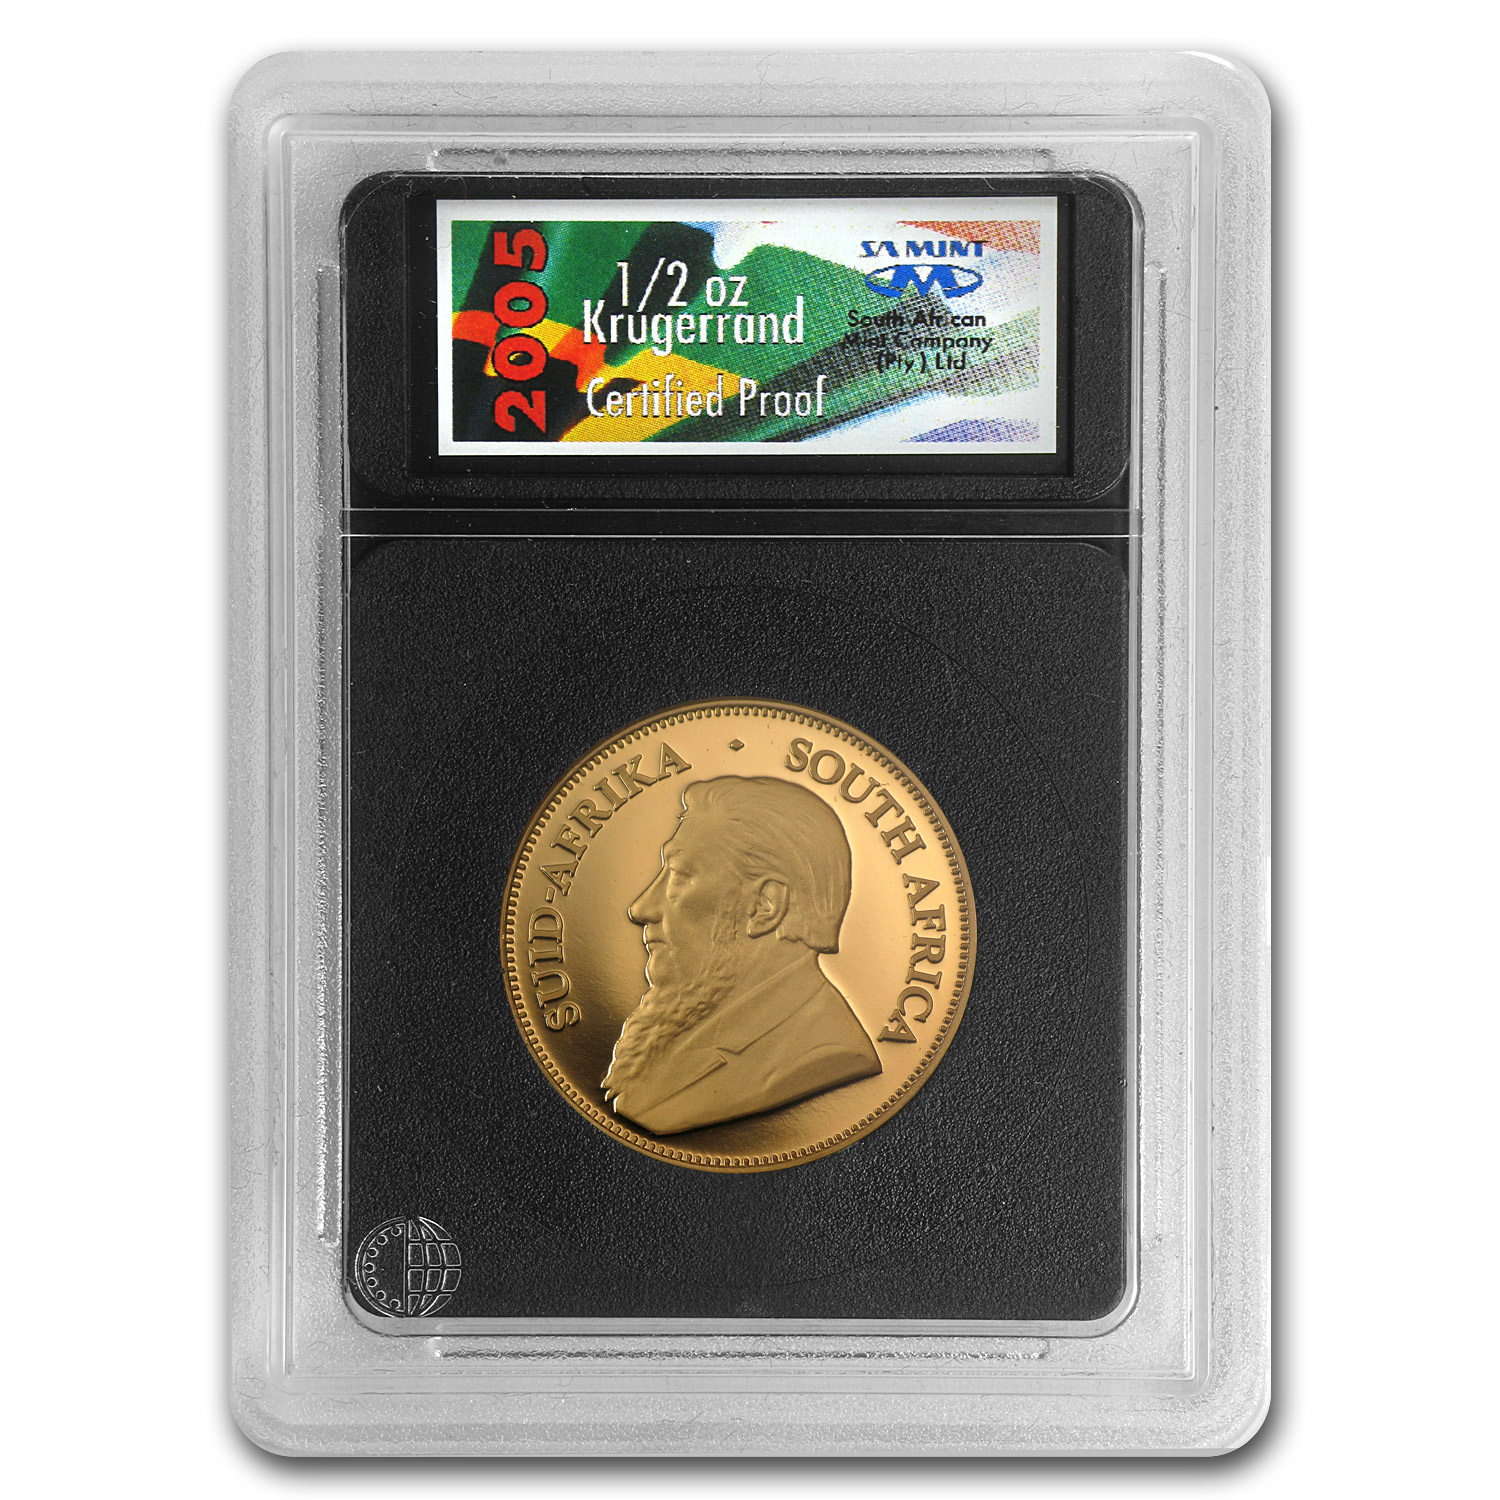 2005 South Africa 1/2 oz Proof Gold Krugerrand (w/Box & COA)